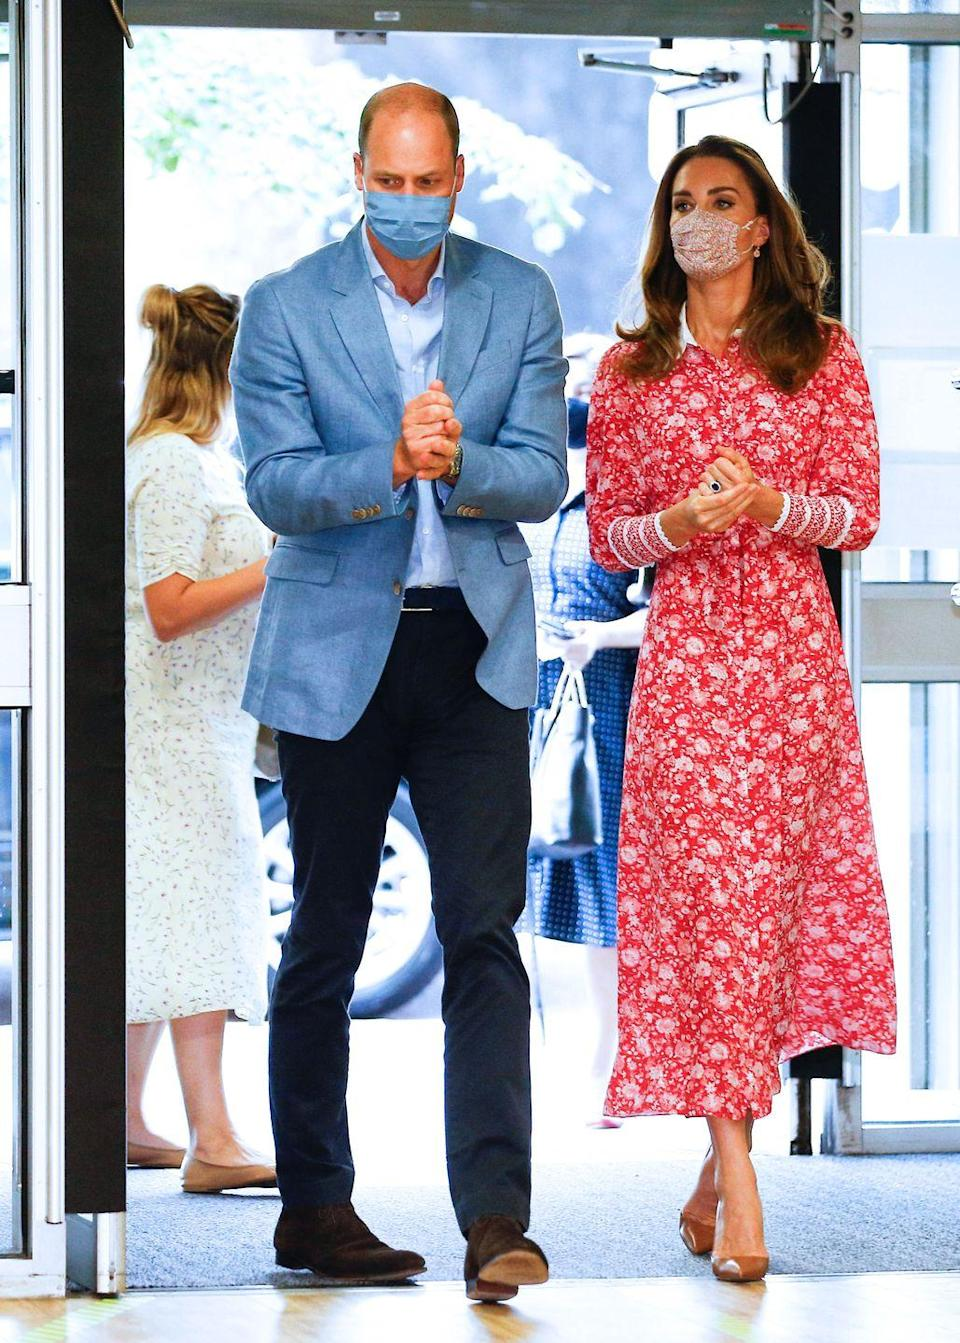 "<p>The Duke and Duchess of Cambridge <a href=""https://www.townandcountrymag.com/society/tradition/a34026114/prince-william-kate-middleton-london-back-to-work-photos/"" rel=""nofollow noopener"" target=""_blank"" data-ylk=""slk:spent the day in London"" class=""link rapid-noclick-resp"">spent the day in London</a>, visiting communities hit hard by the coronavirus pandemic. Kate ushered in fall with a red floral shirtdress, brown pumps, and her frequently-worn Liberty-print face mask from the boutique, <a href=""https://www.amaiakids.co.uk/collections/adult-masks"" rel=""nofollow noopener"" target=""_blank"" data-ylk=""slk:Amaia"" class=""link rapid-noclick-resp"">Amaia</a>. </p>"